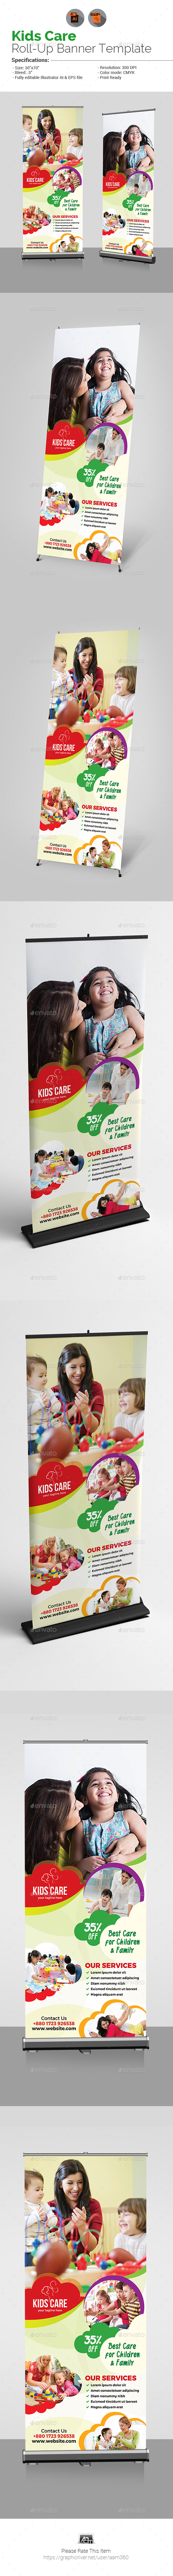 Child Care Roll-Up Banner Template - Signage Print Templates